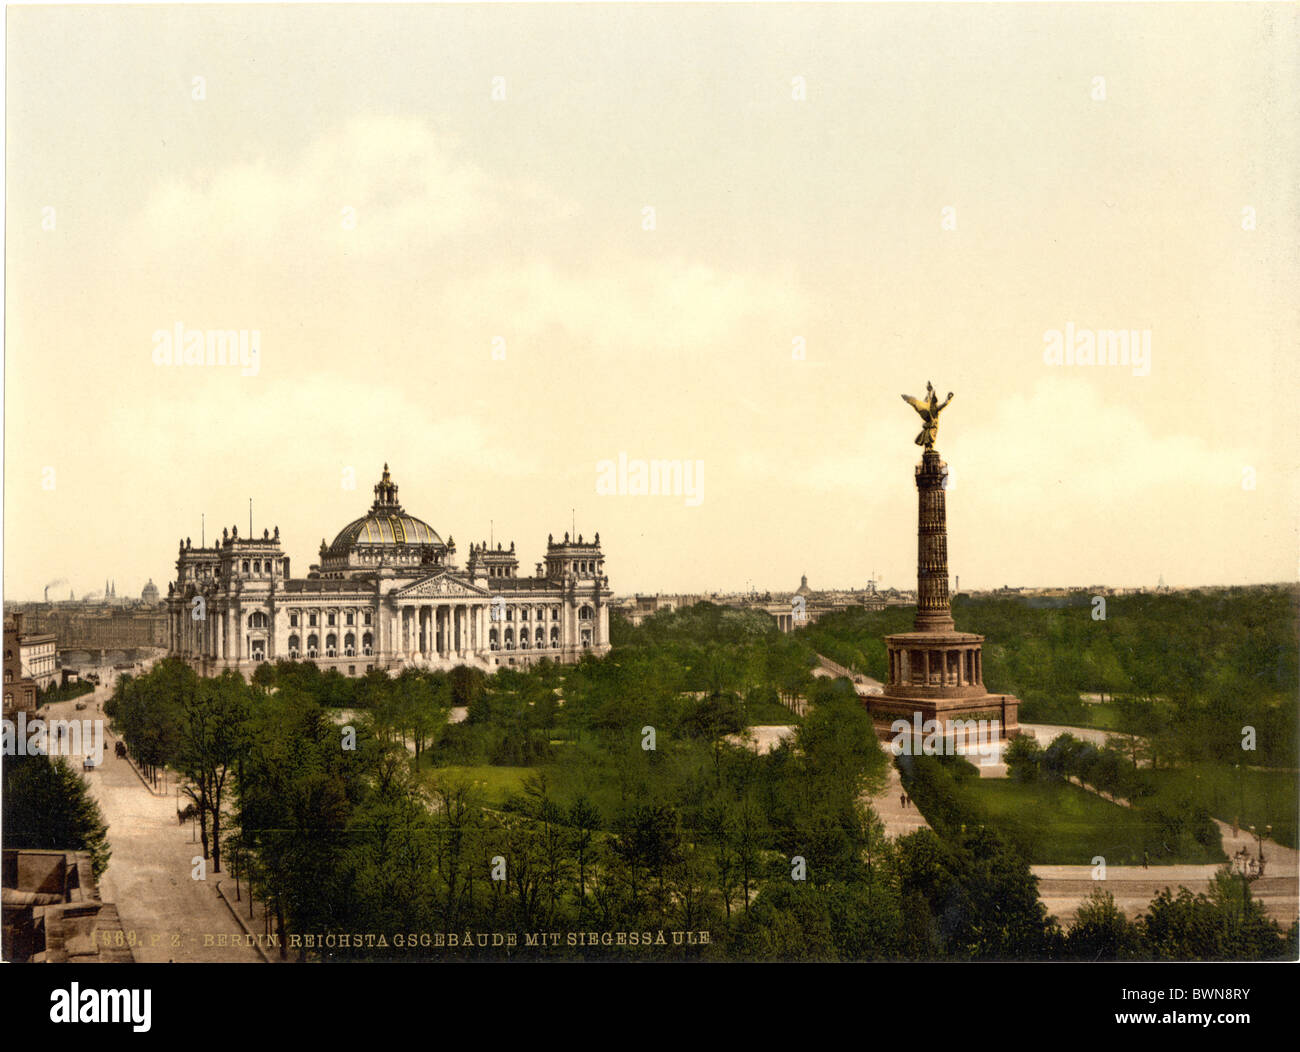 Berlin Reichstag House Triumphal Column Germany Europe Photochrom about 1900 German Empire history historical - Stock Image